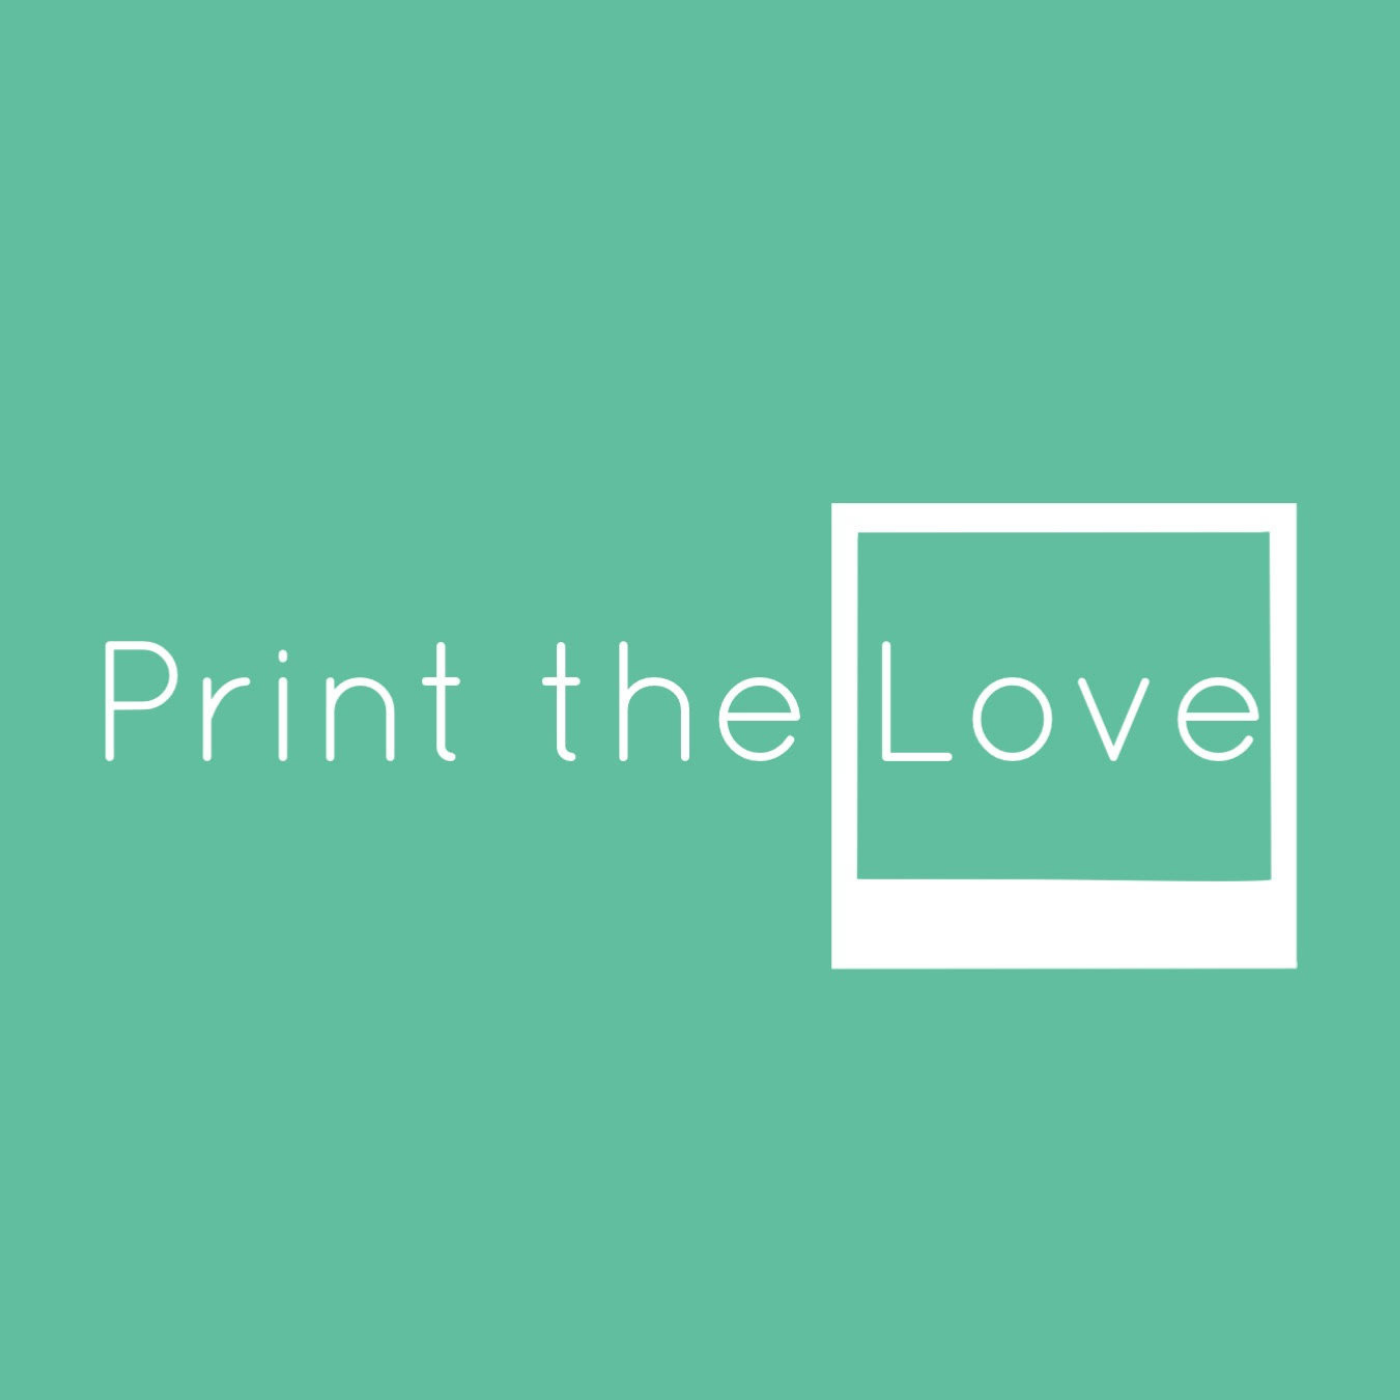 Print the Love  honors the dignity of each person through the gift of an instant photograph.  We raised $1,050  to provide cameras + film for PTL ambassadors to travel to 3 villages, gifting people in schools, orphanages, and hospitals with photographs that celebrate their milestones and special moments.   Give directly to Print the Love here  .